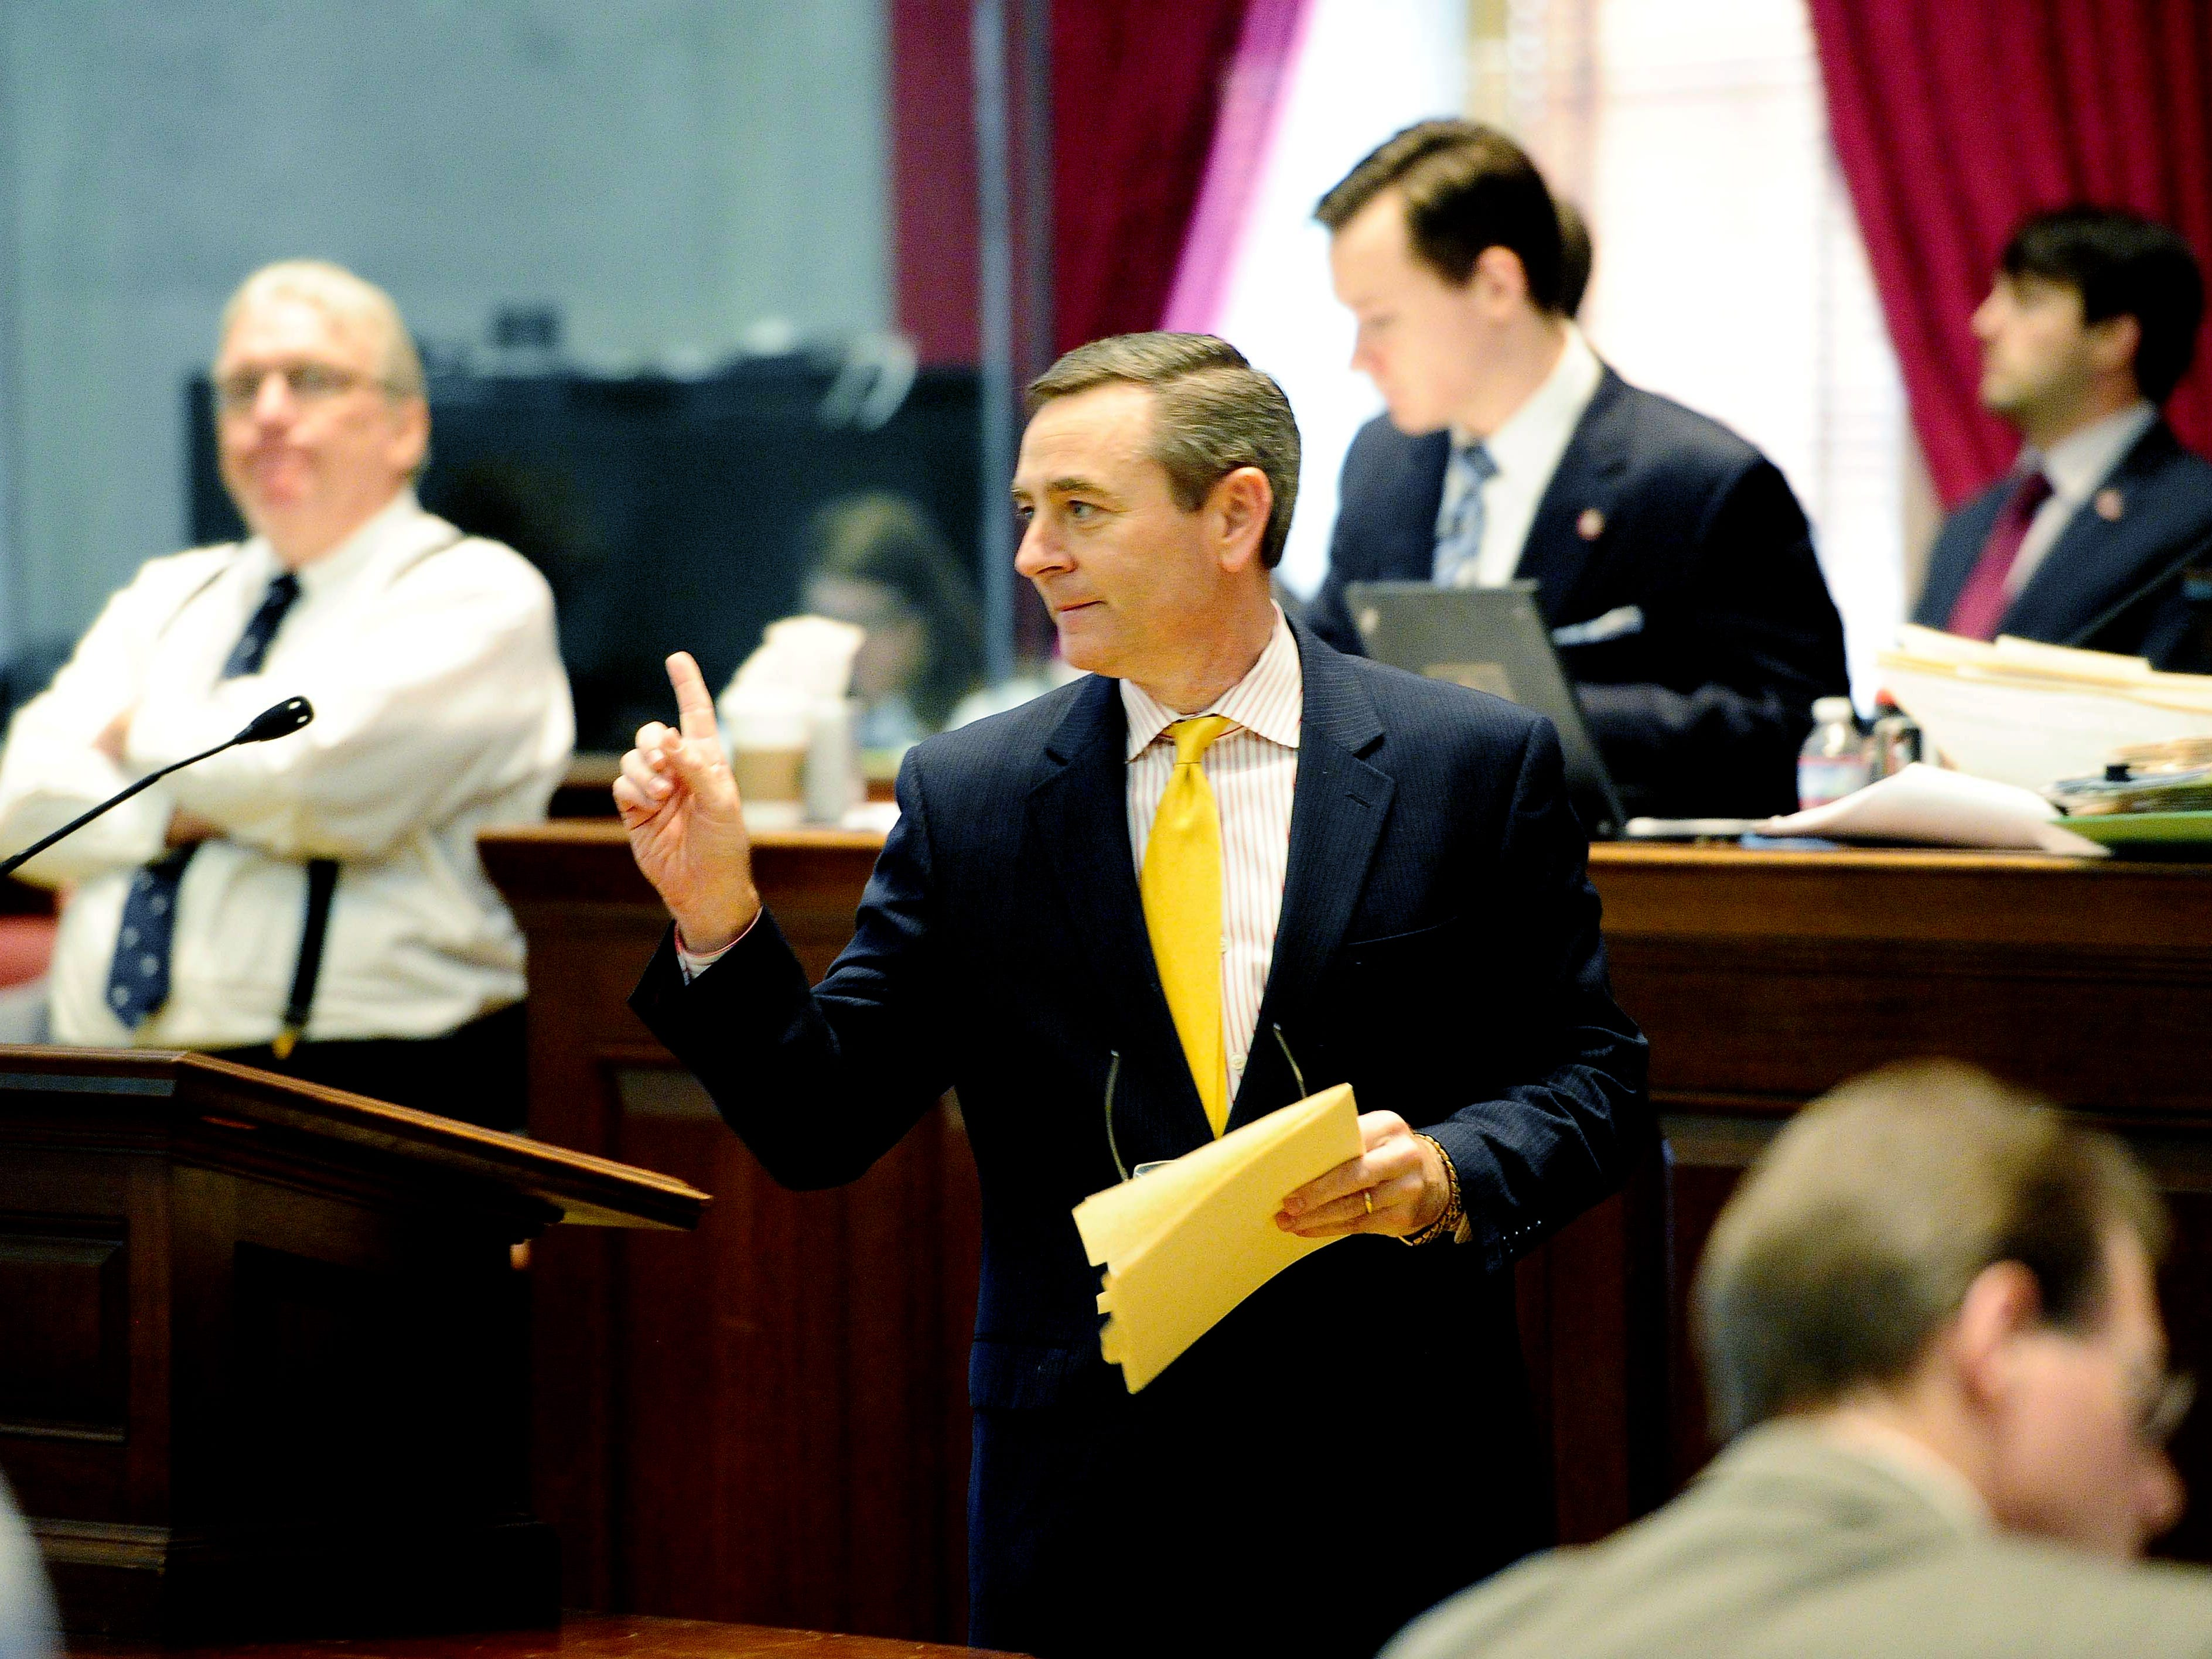 State Rep. Glen Casada, R-Franklin, speaks on the last day of the legislature's session May 1, 2012.